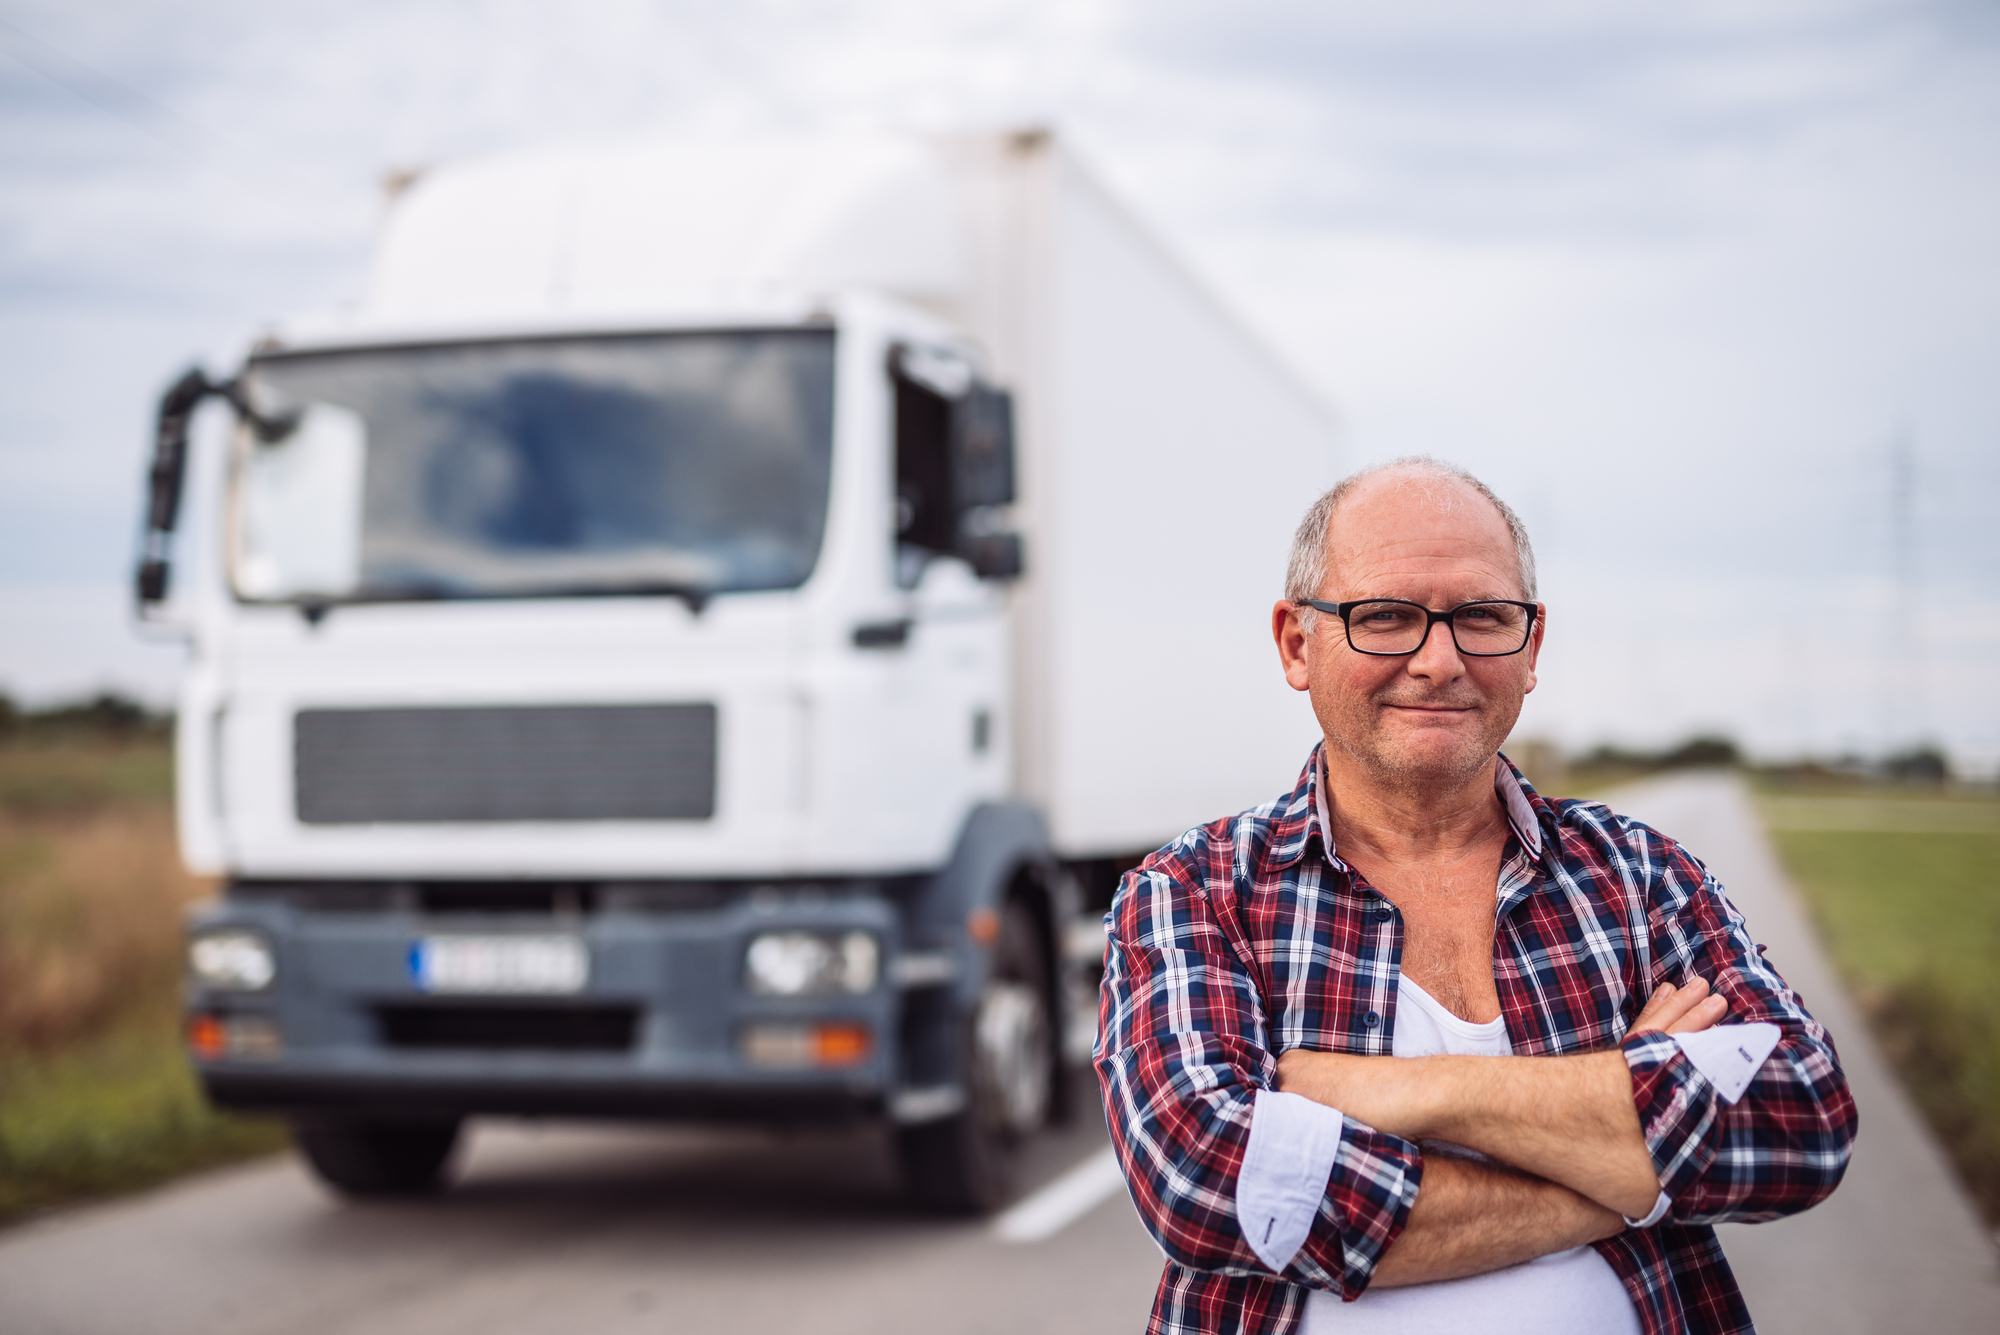 A truck driver stands in front of his truck